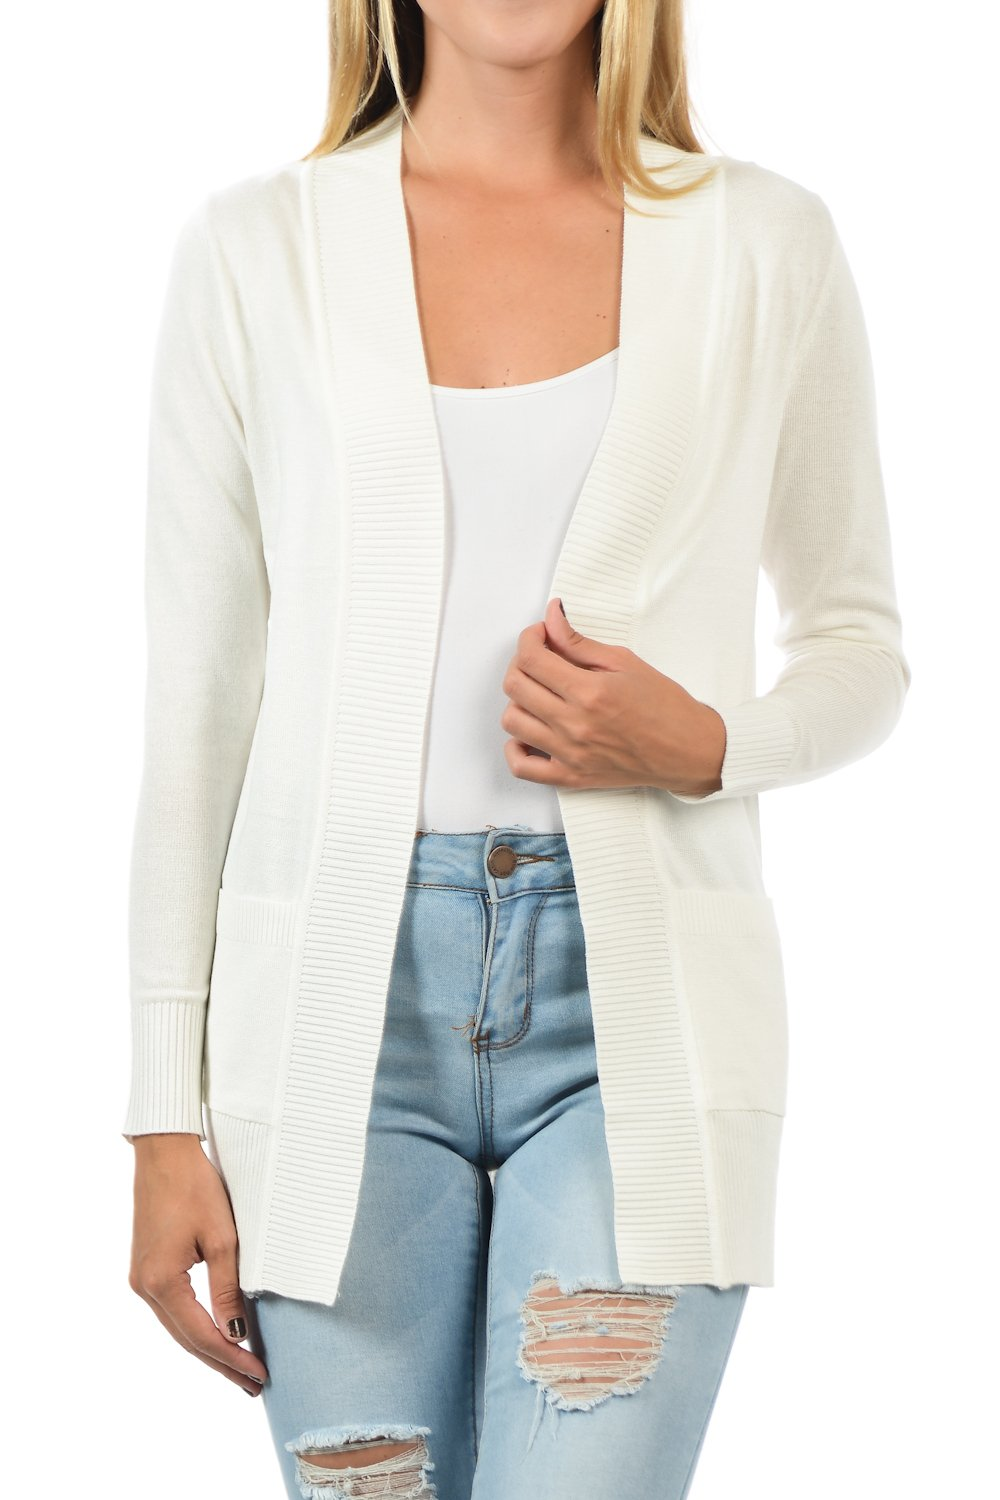 YourStyle Women Open Front Long Sleeve Classic Knit Cardigan (Small, B. White)